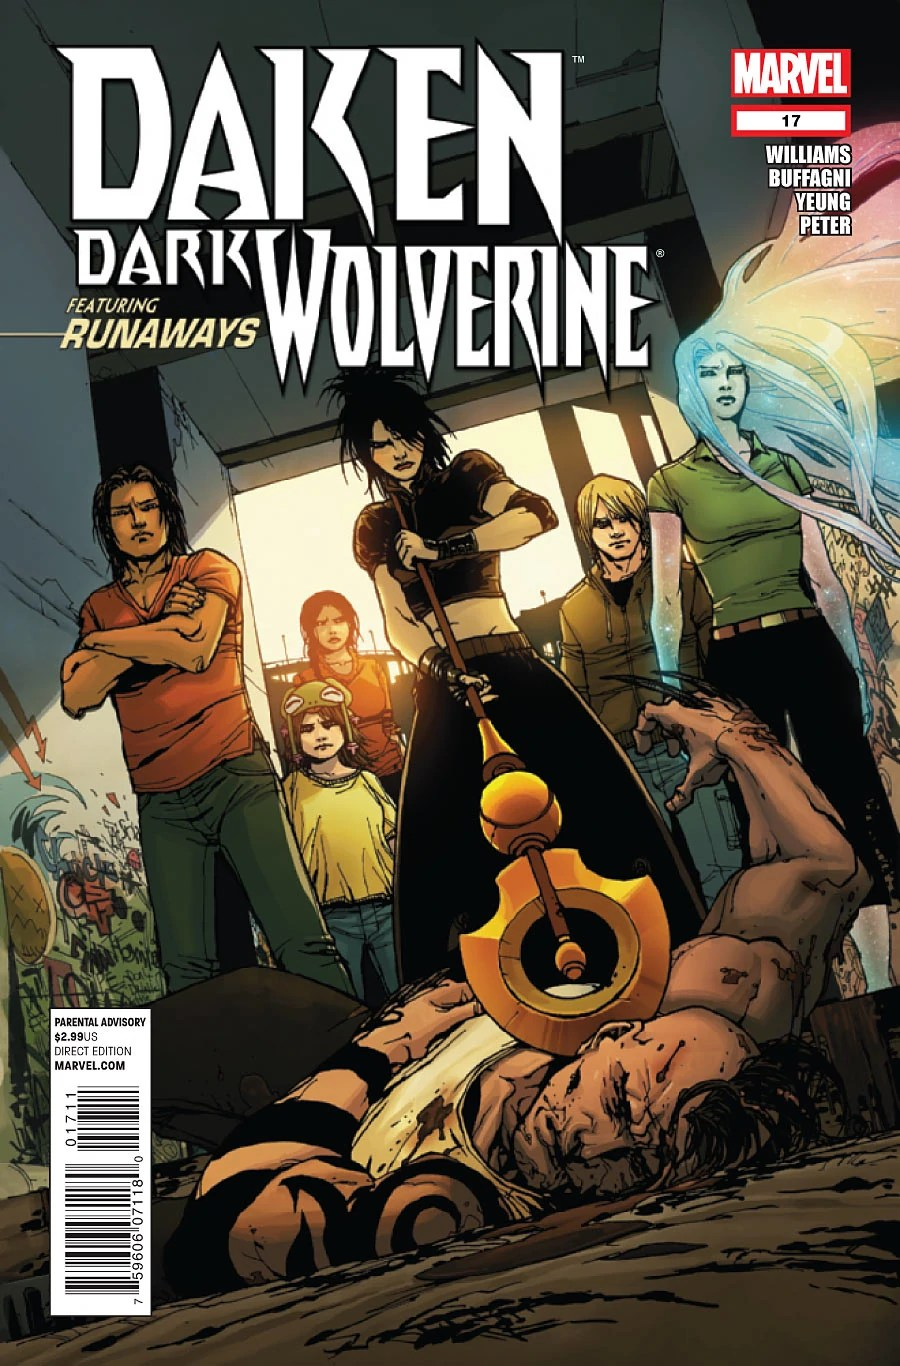 Daken Dark Wolverine Vol 1 17 Marvel Database FANDOM